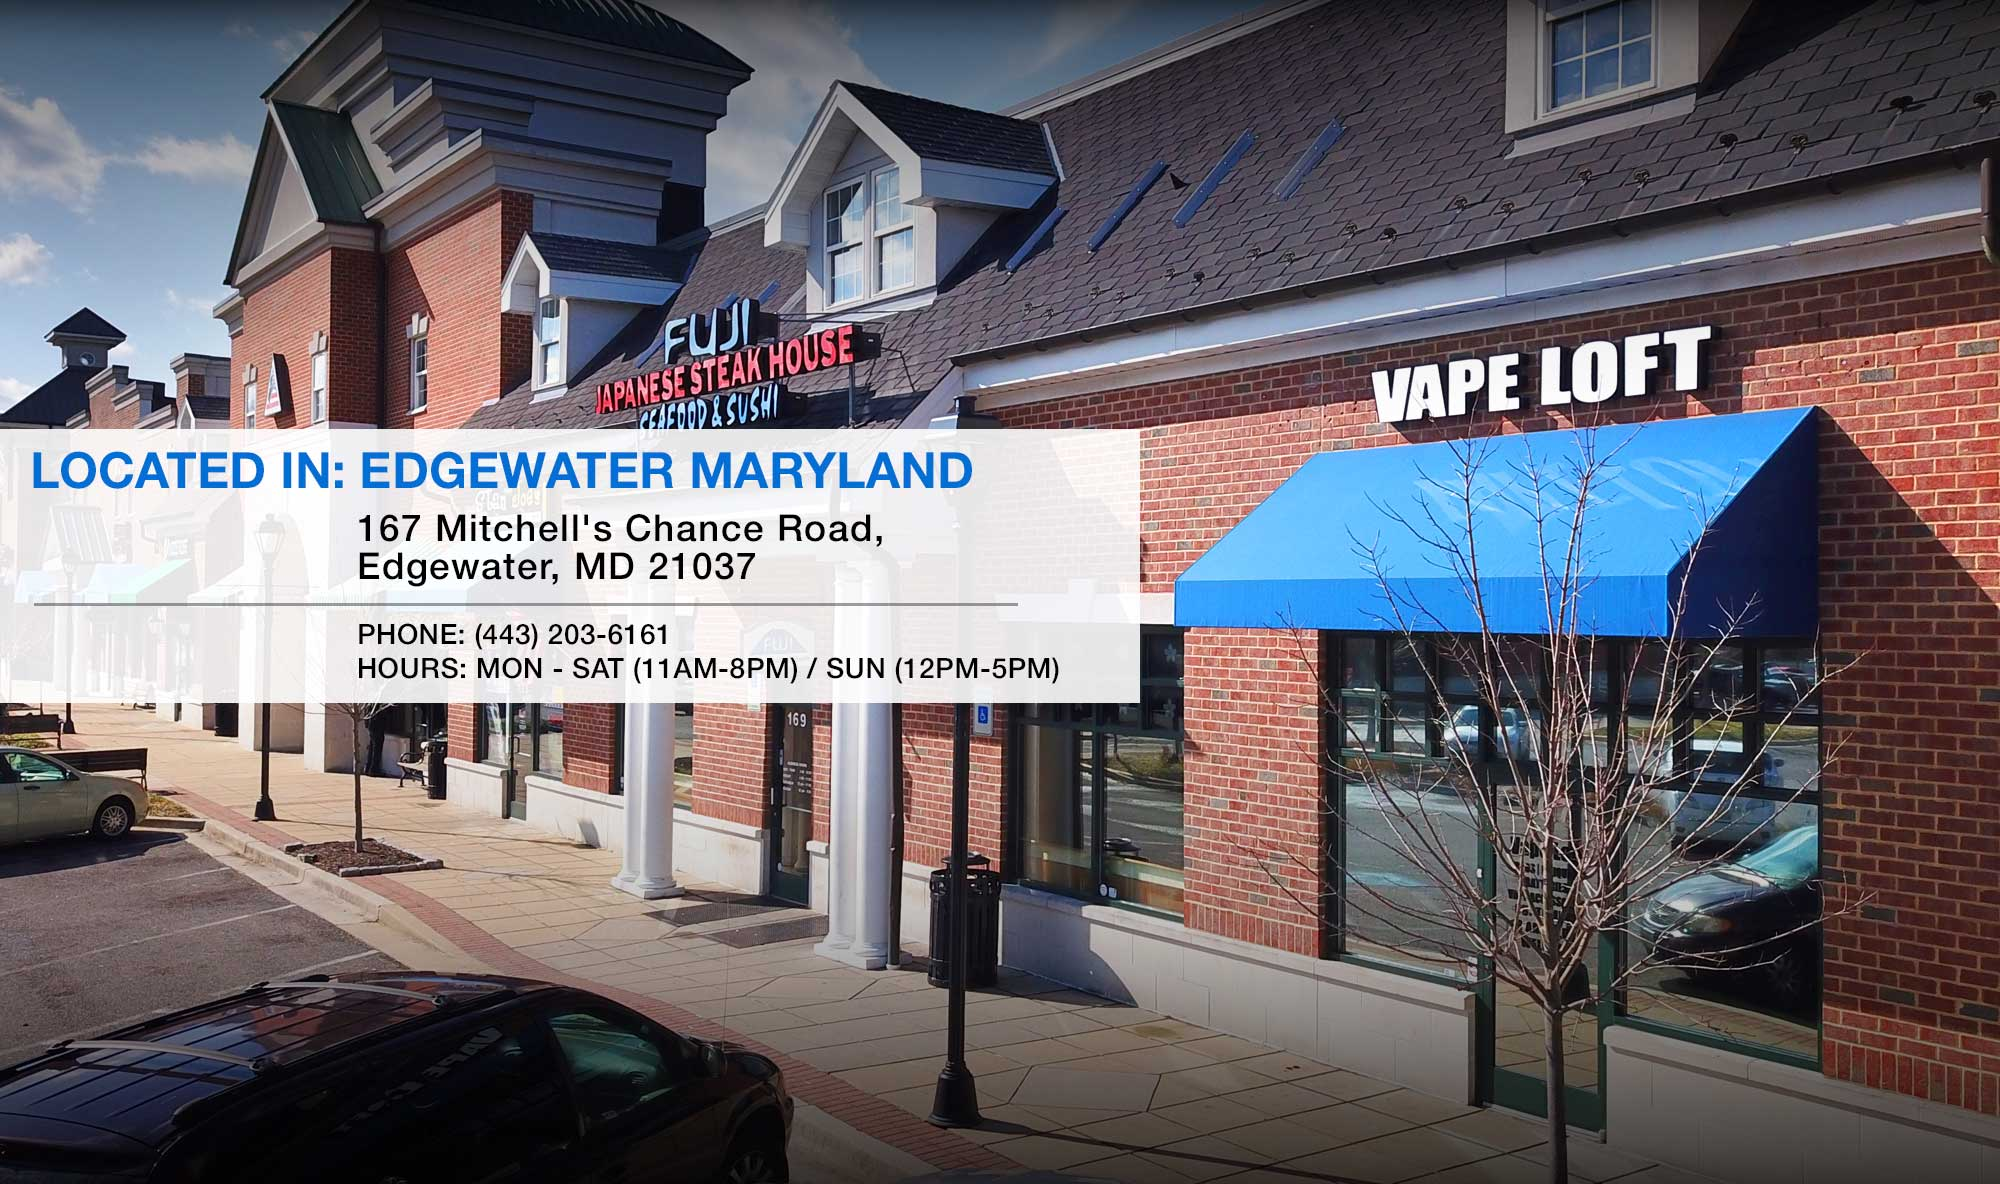 Vapeloft Maryland Vape Product For Sale Edgewater Maryland